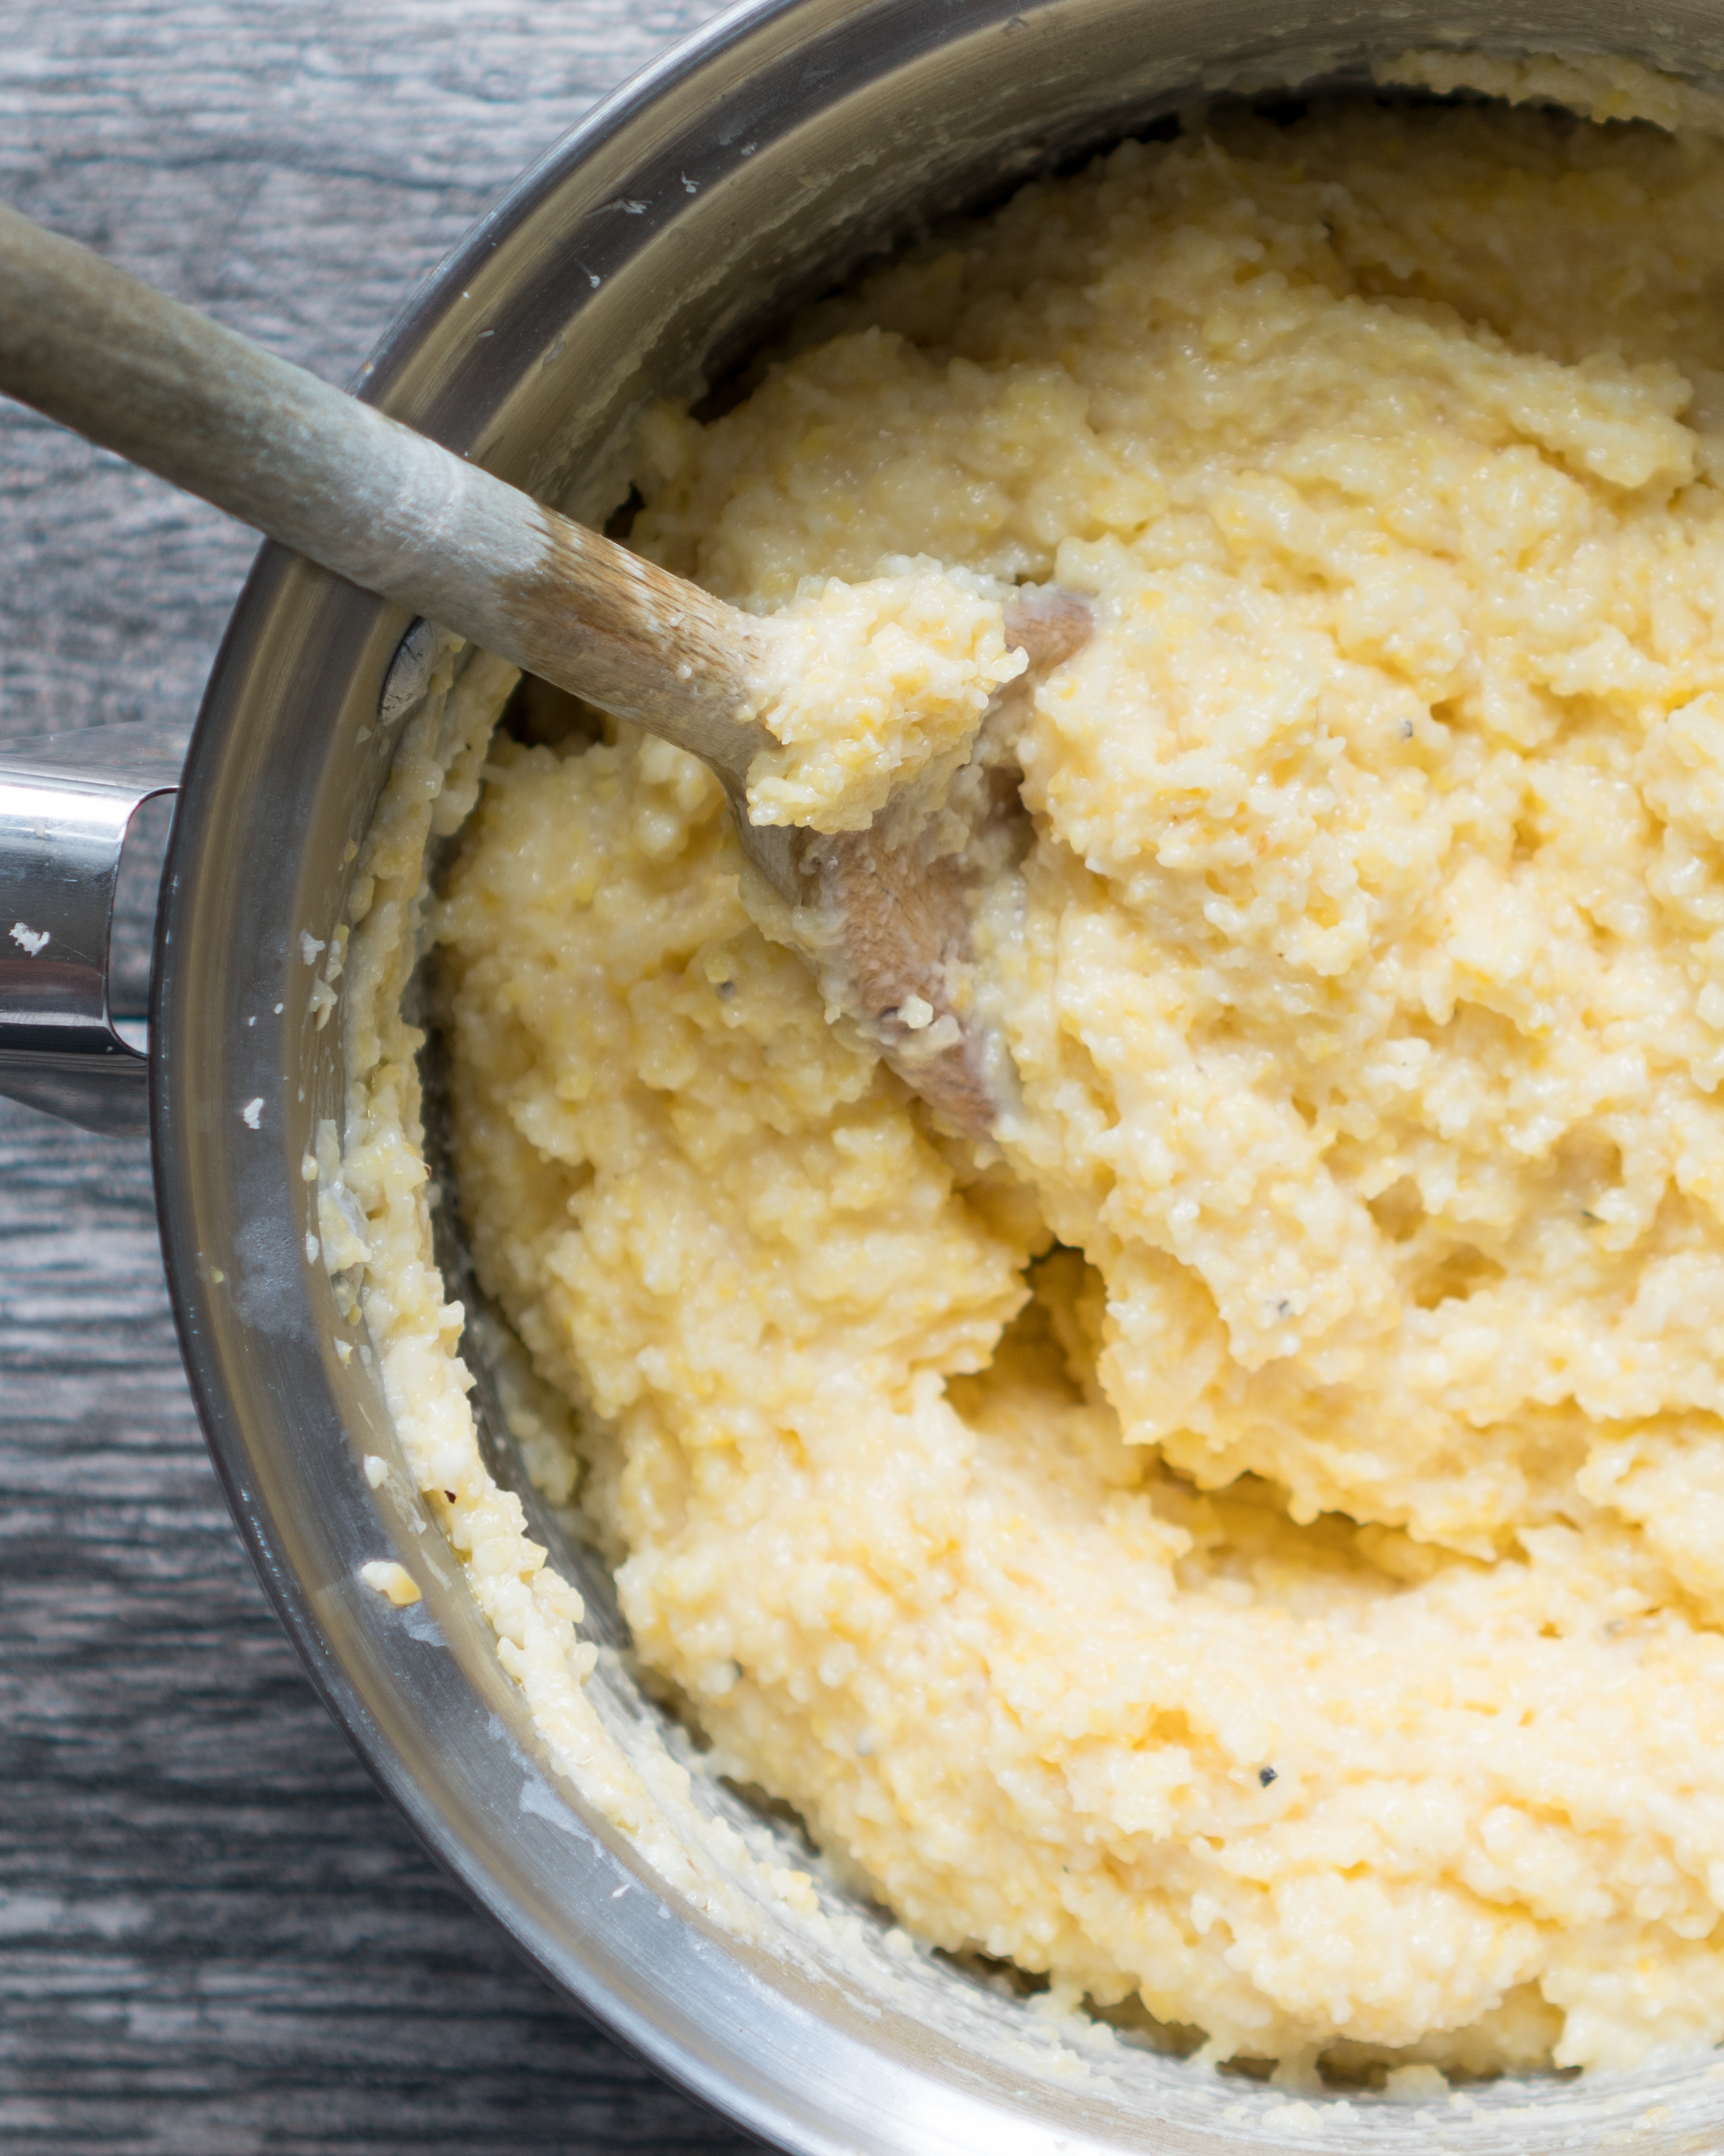 Creamy Parmesan Polenta – Simple stovetop recipe for Creamy Parmesan Polenta! Cooked in broth, almond milk, & fresh garlic with parmesan and creamy cottage cheese melted right in. A gluten-free dinner ready in under 30 min! ♥ | freeyourfork.com